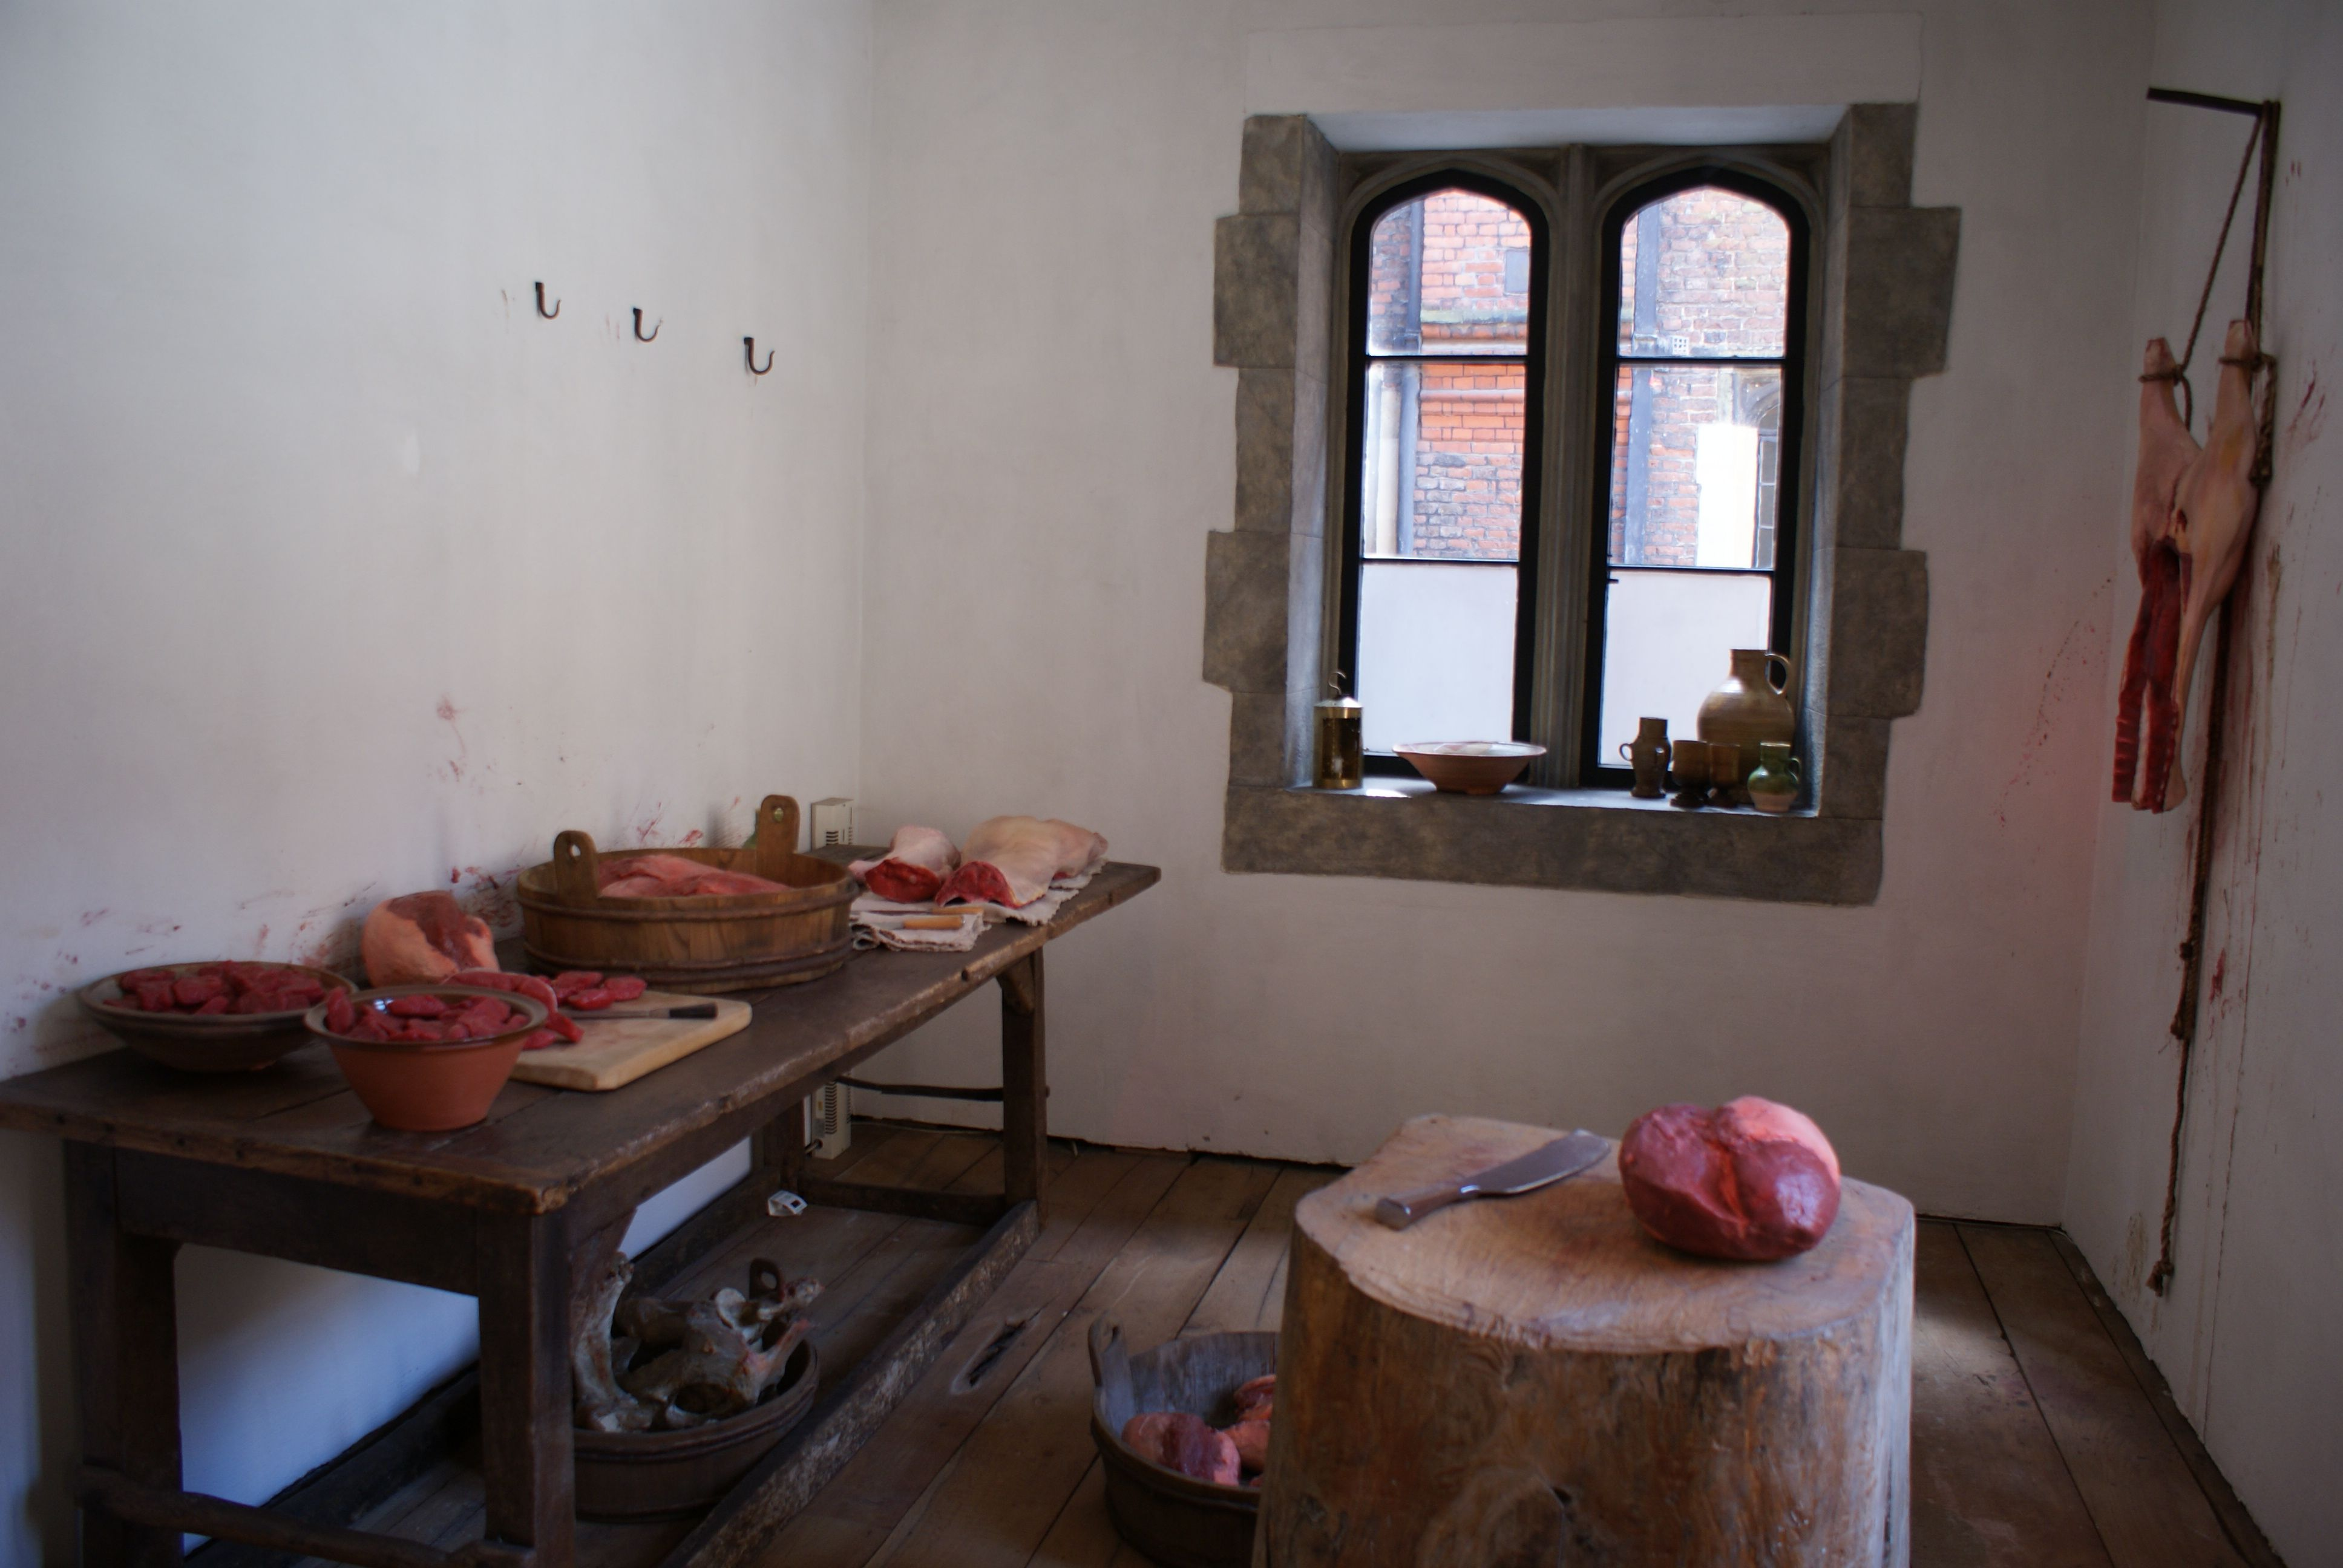 IN THE KITCHEN - 15TH CENTURY MEDIEVAL CASTLE - SURREY - UK http://www.hrp.org.uk/HamptonCourtPalace/